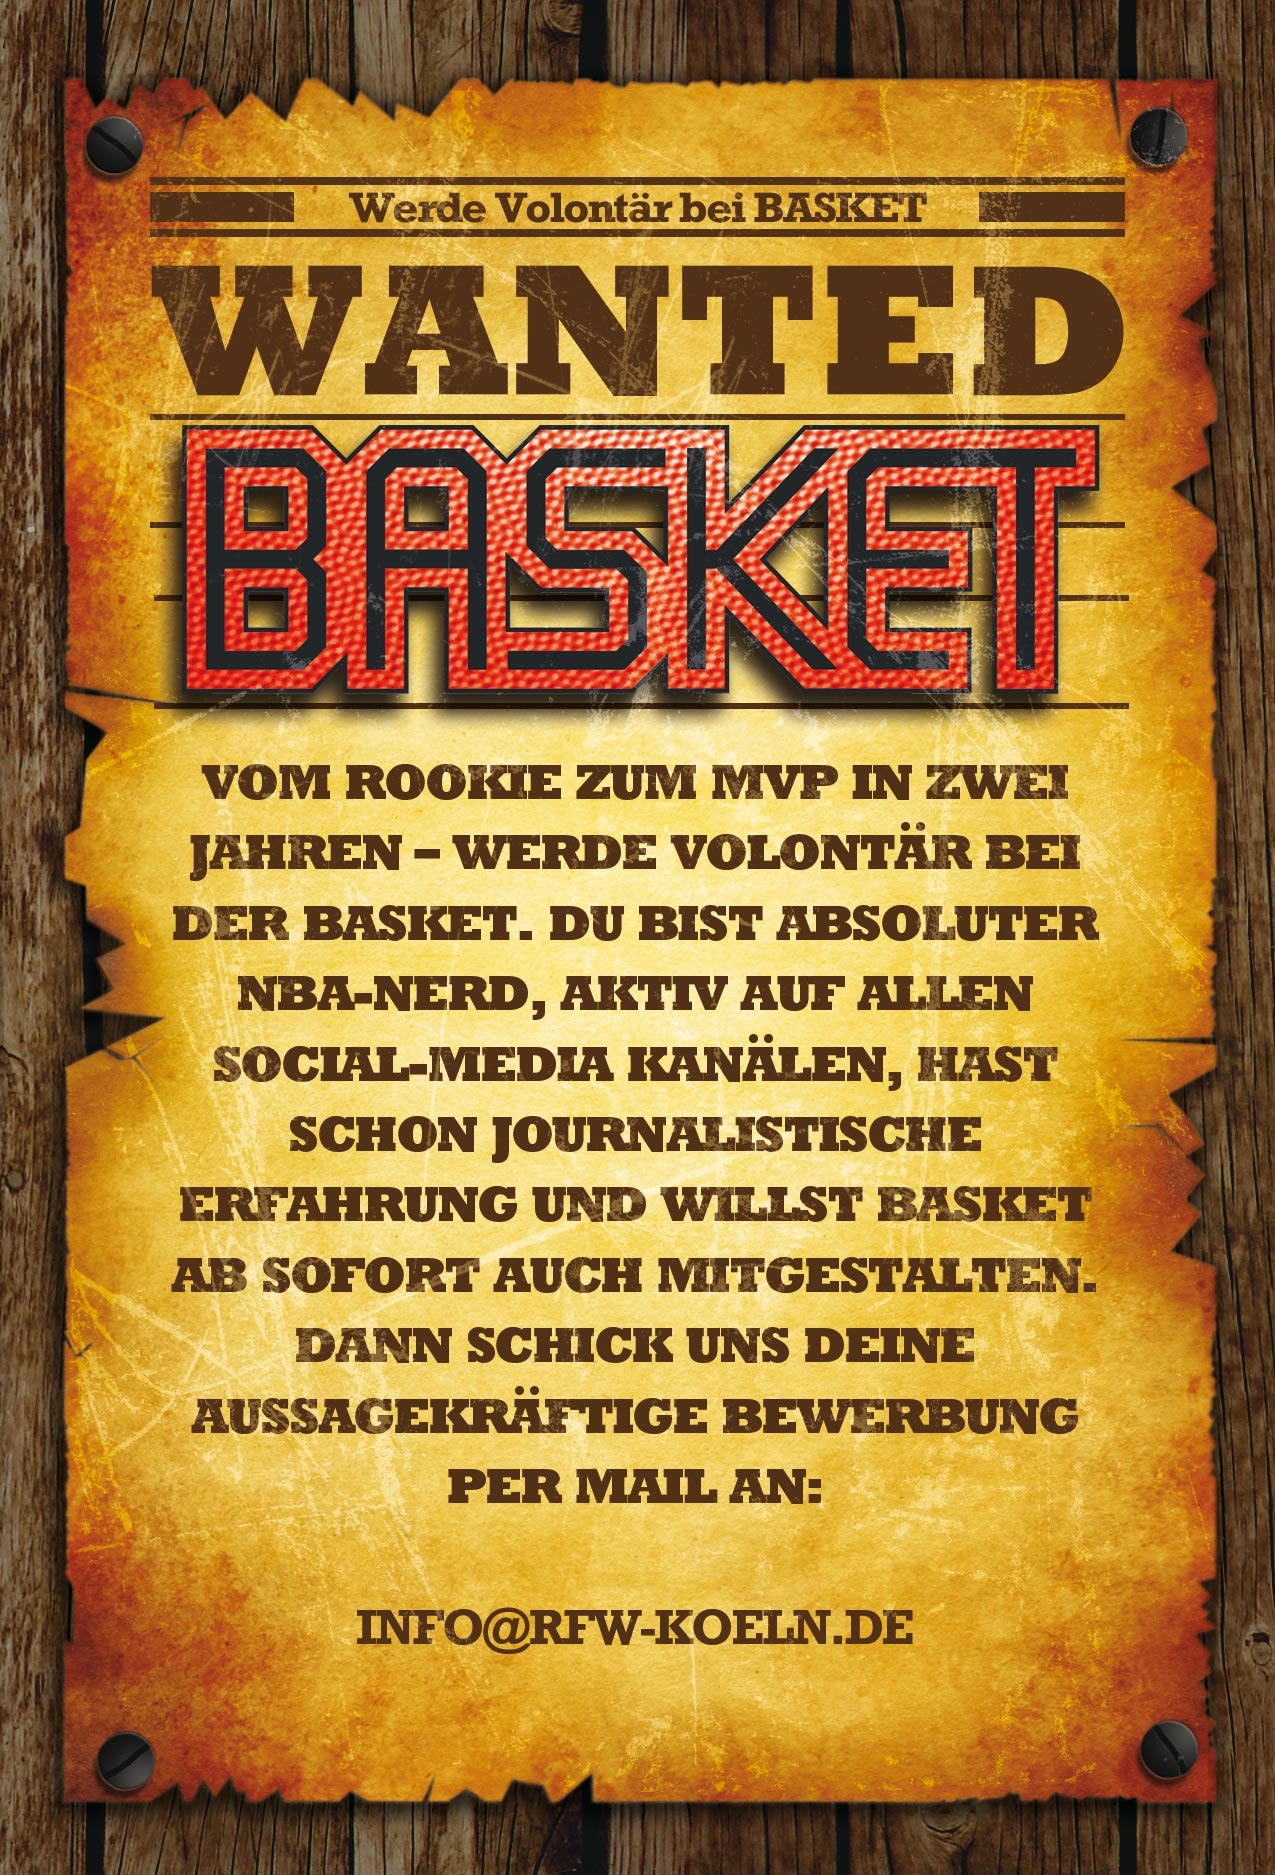 Wanted-BASKET